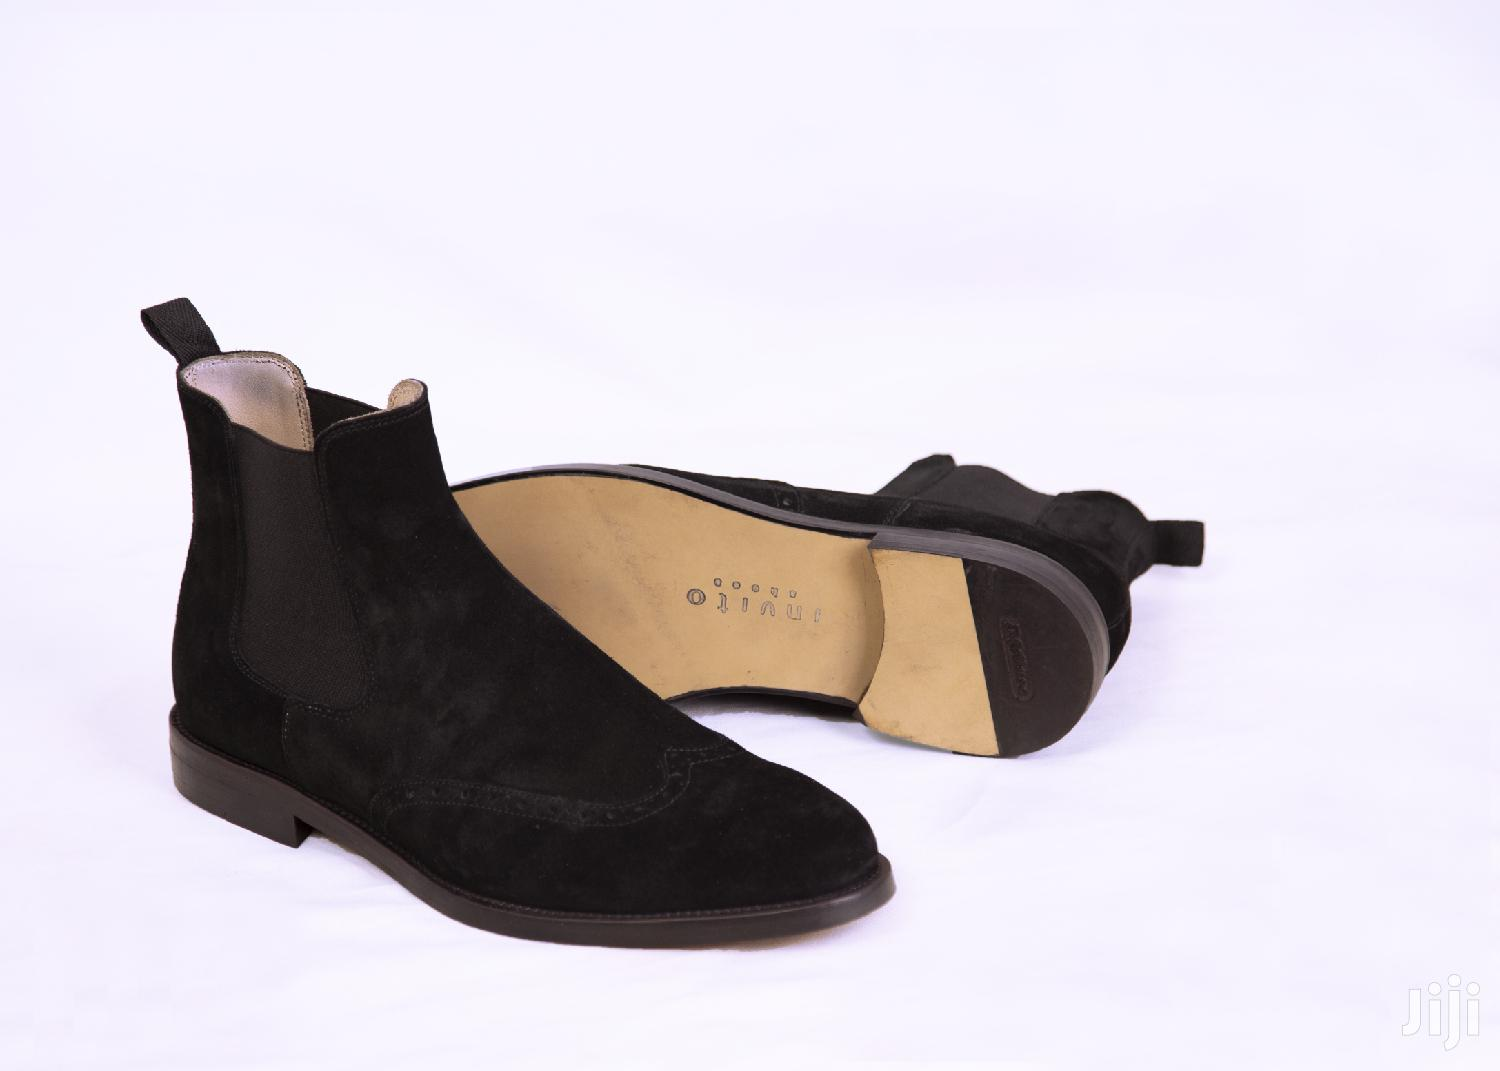 Real Leather Chelsea Boots, Reduced to Clear Stocks Buy Now   Shoes for sale in Accra Metropolitan, Greater Accra, Ghana